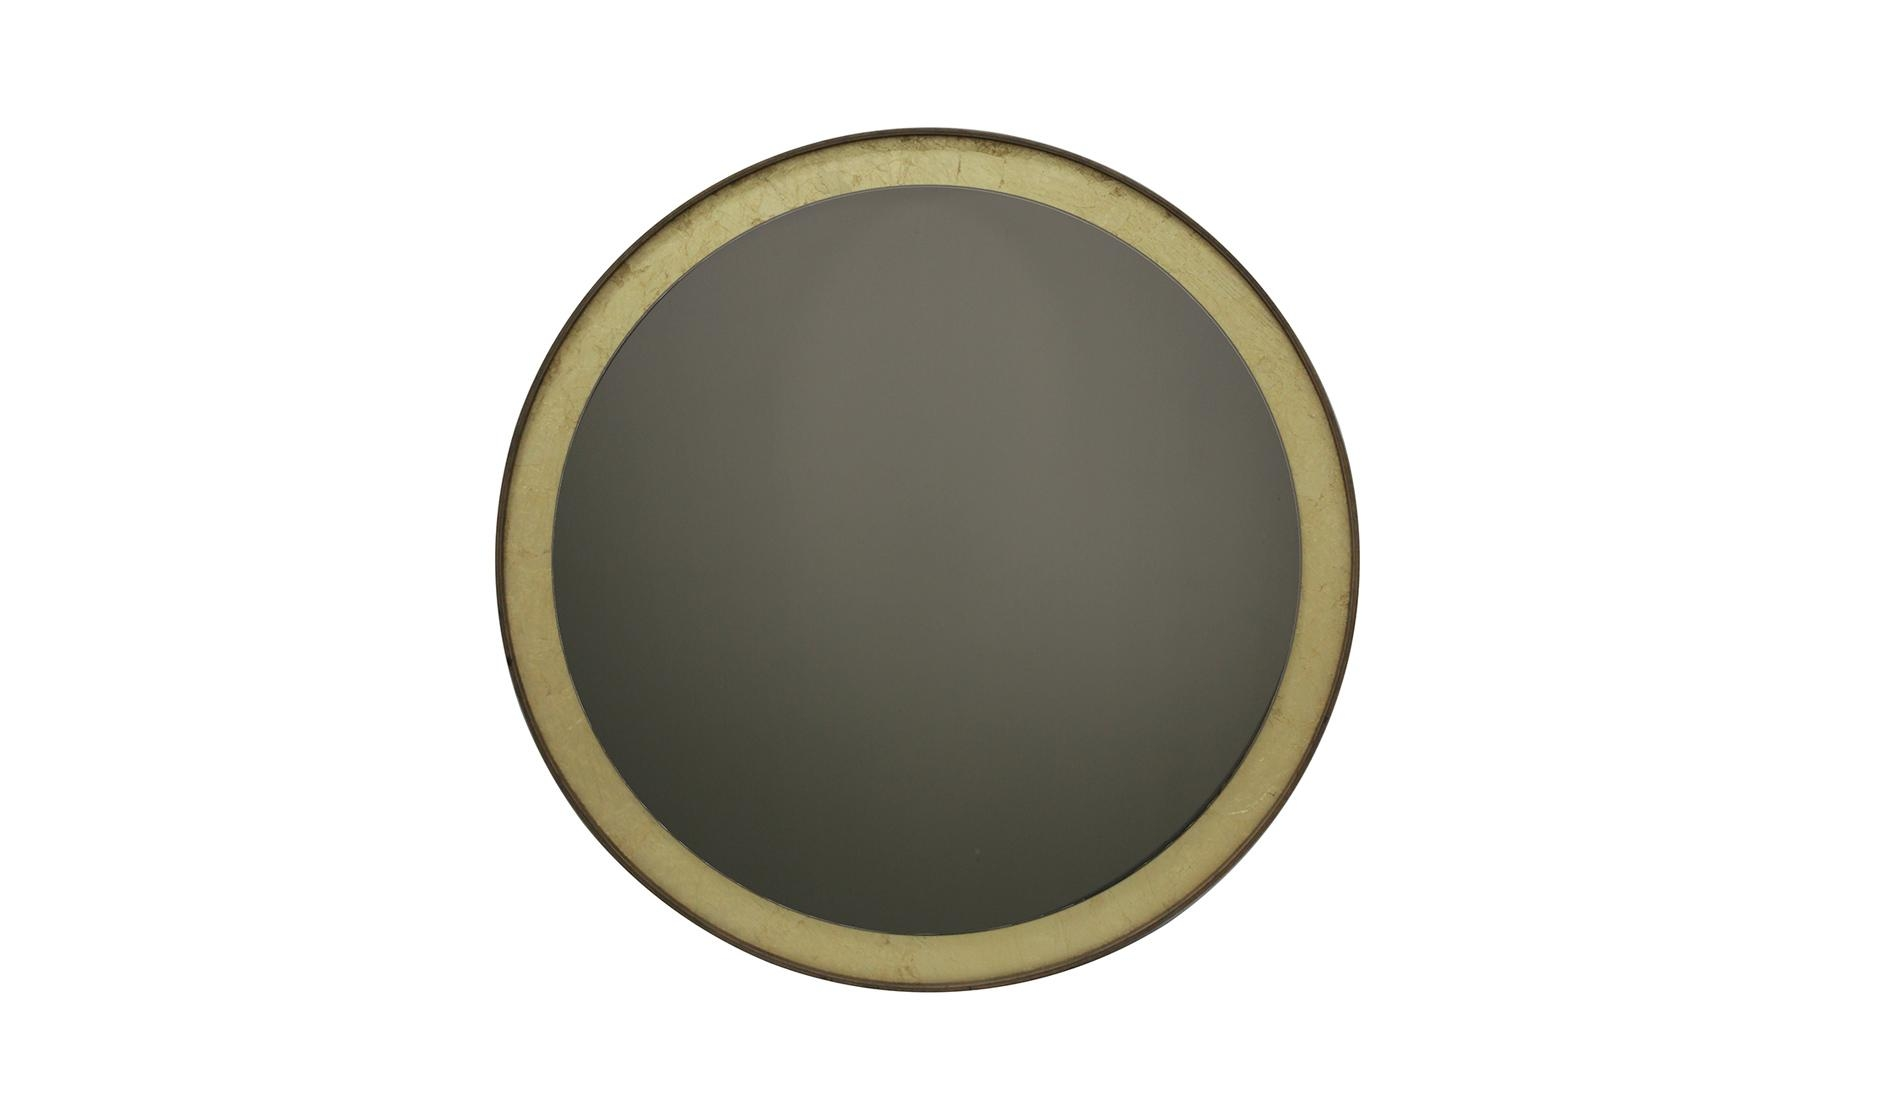 Notre Monde Gold Leaf Bronze Wall Mirror | Dopo Domani In Bronze Wall Mirror (View 16 of 20)